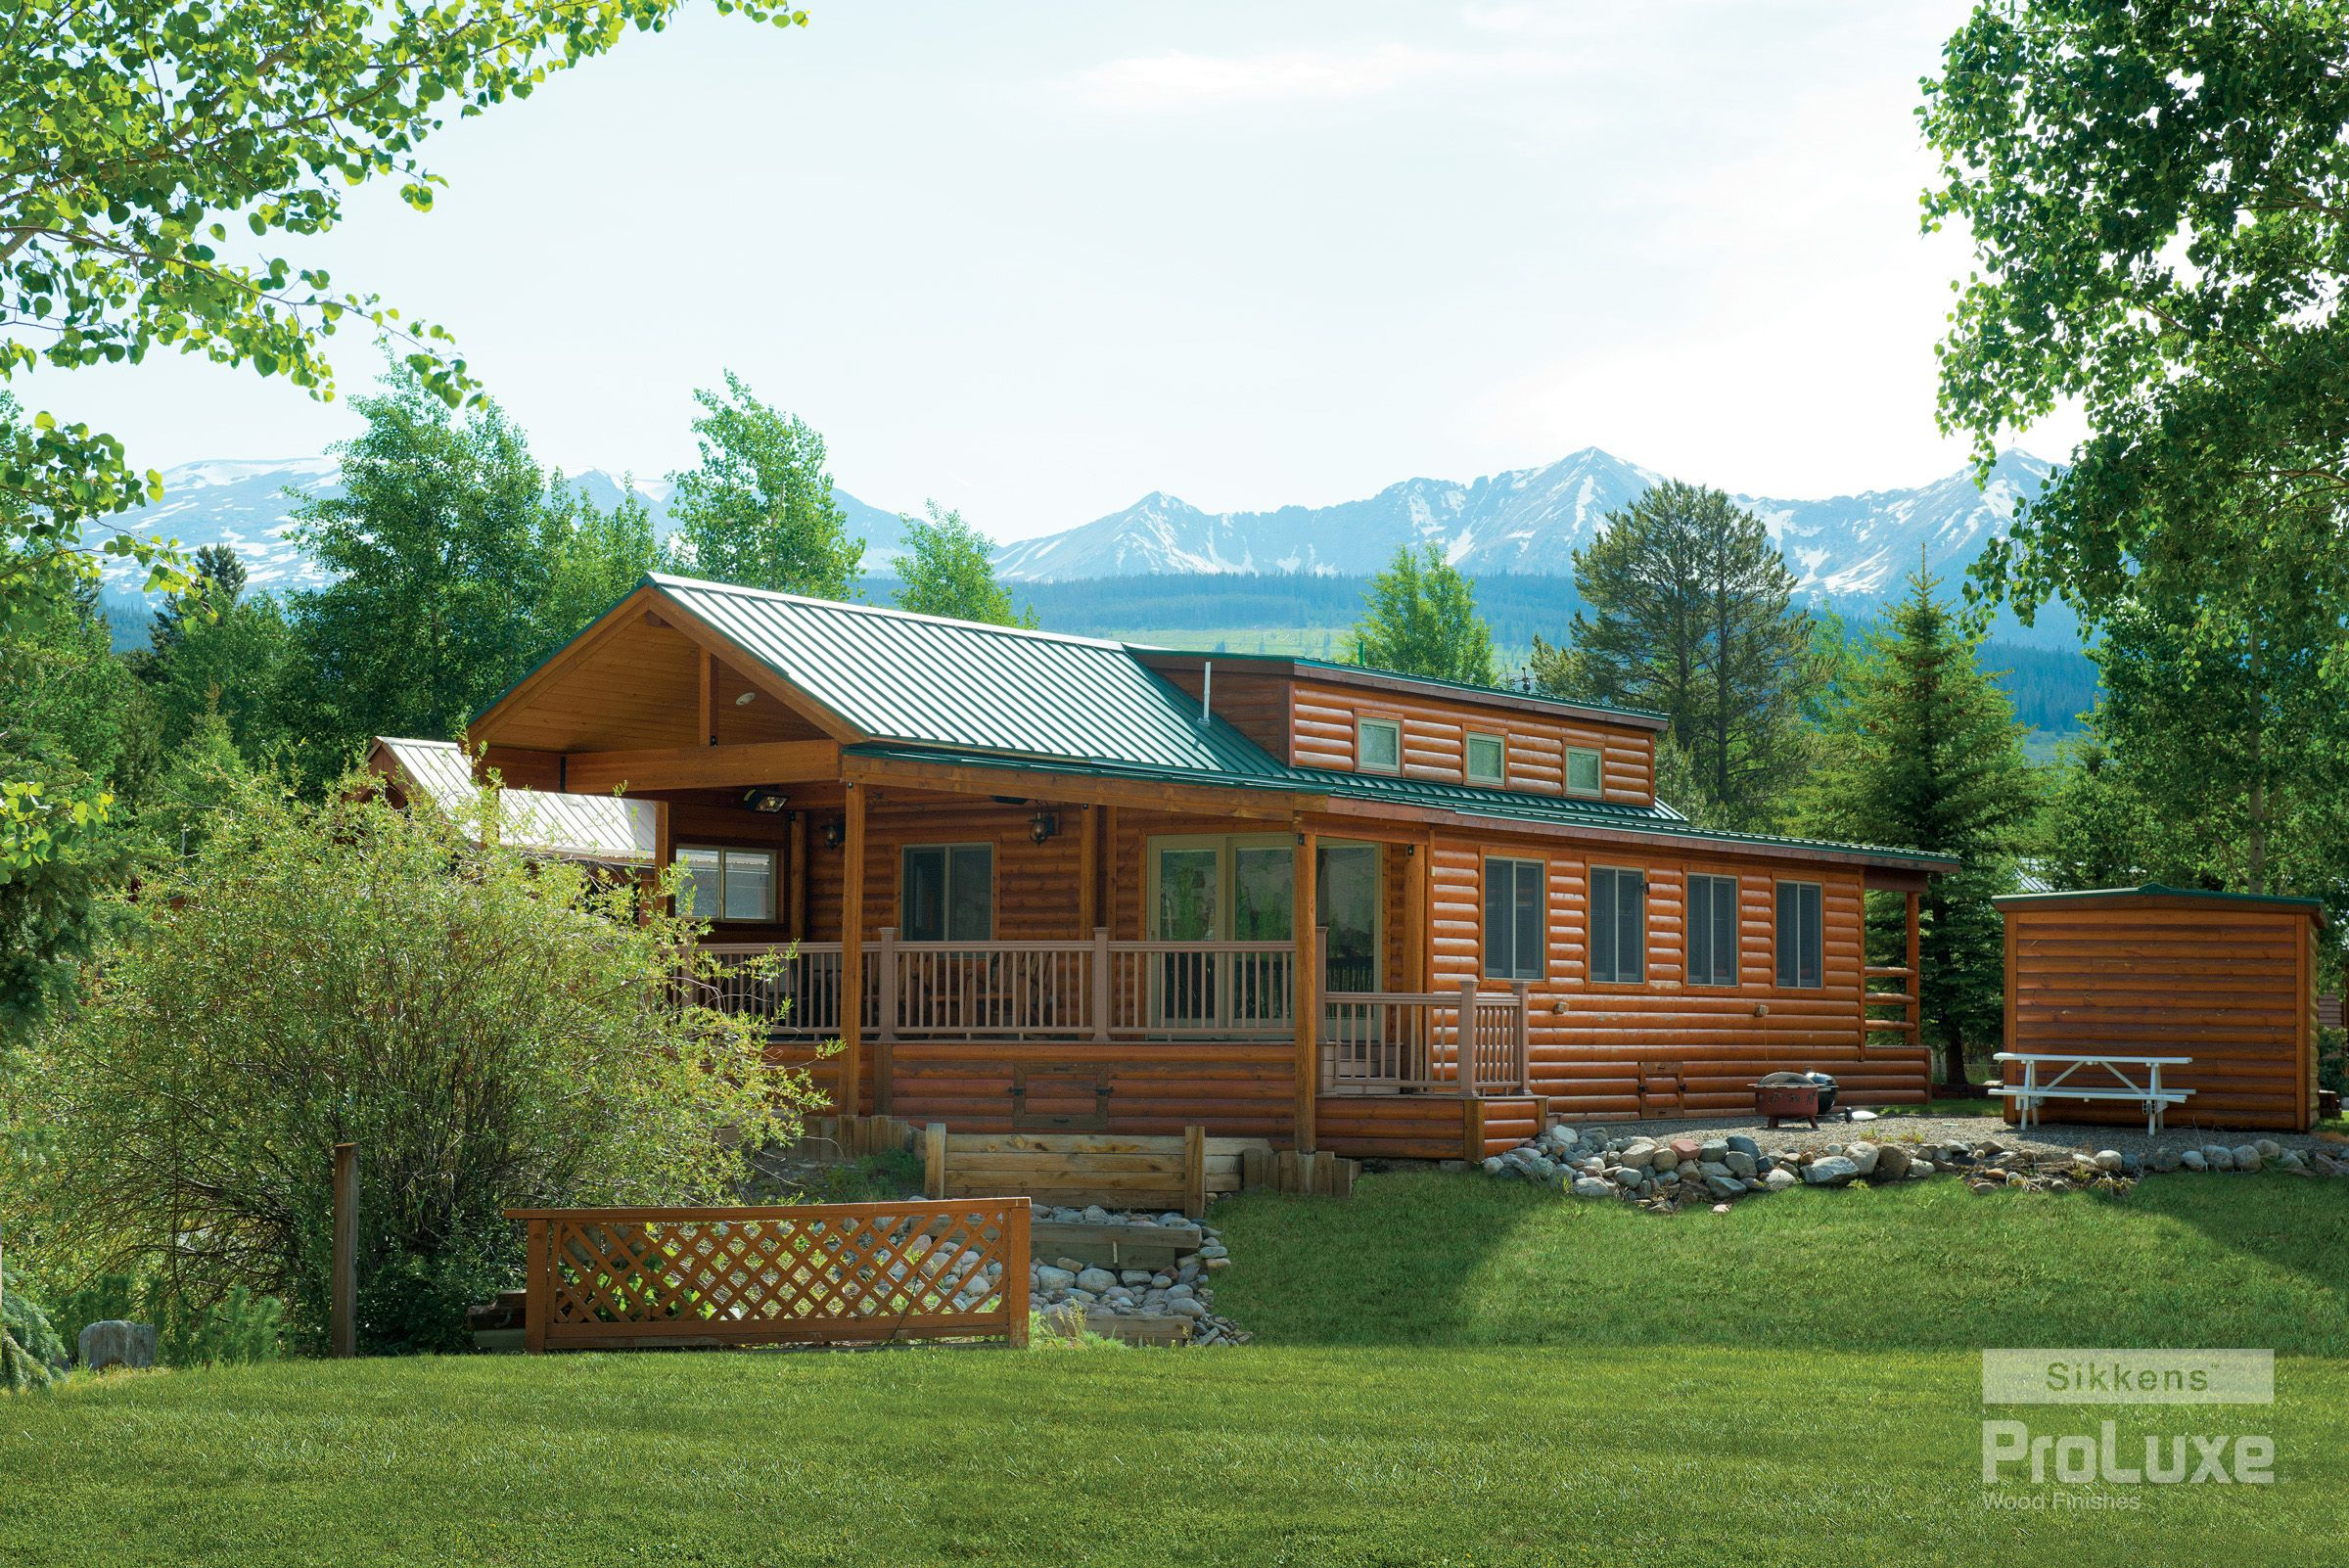 This rustic log cabin features sikkens proluxe cetol How to stain log cabin